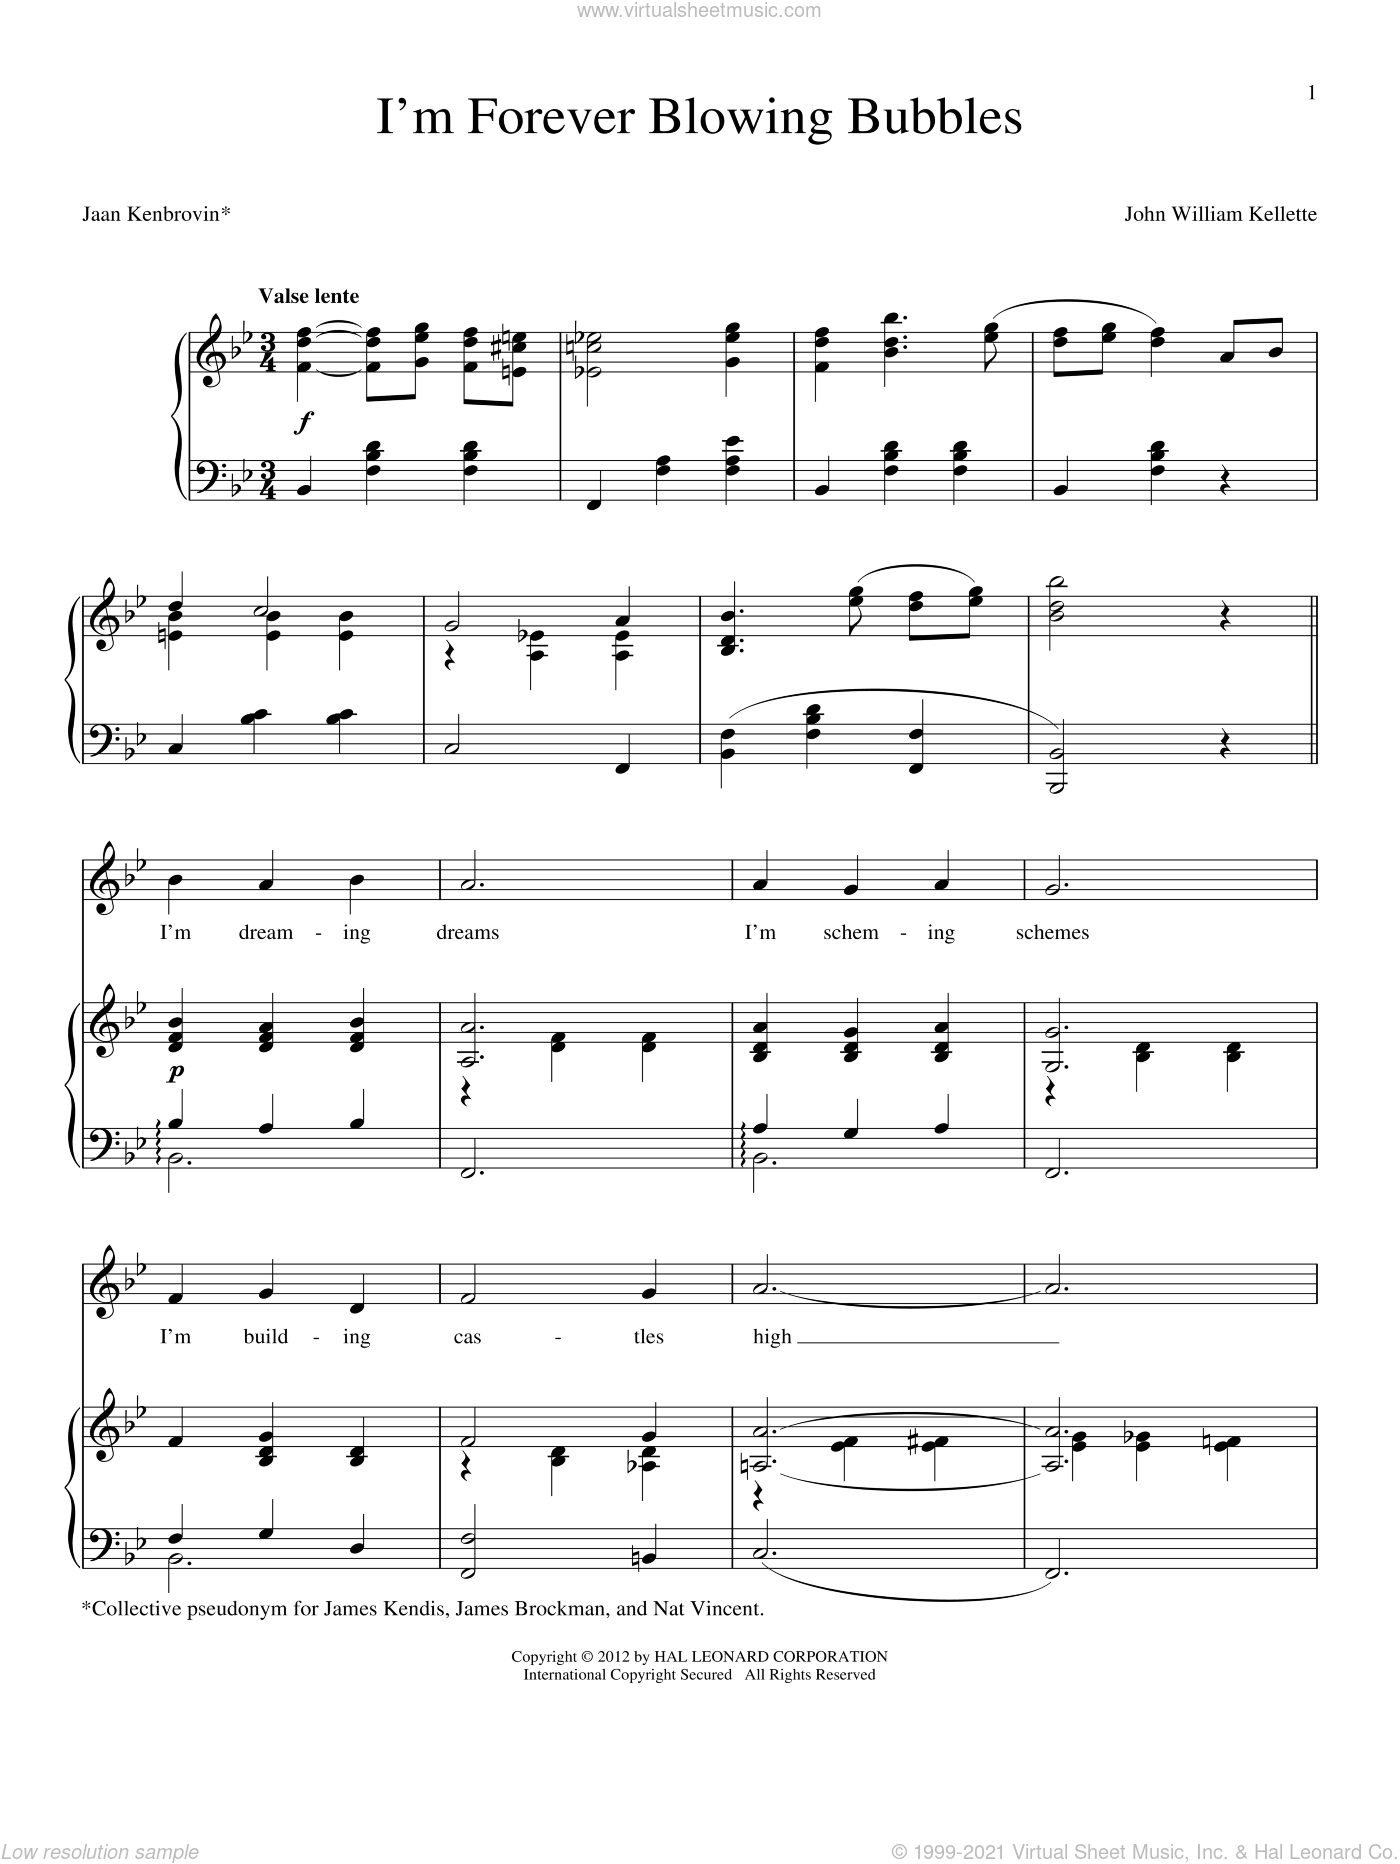 I'm Forever Blowing Bubbles sheet music for voice and piano by John William Kellette